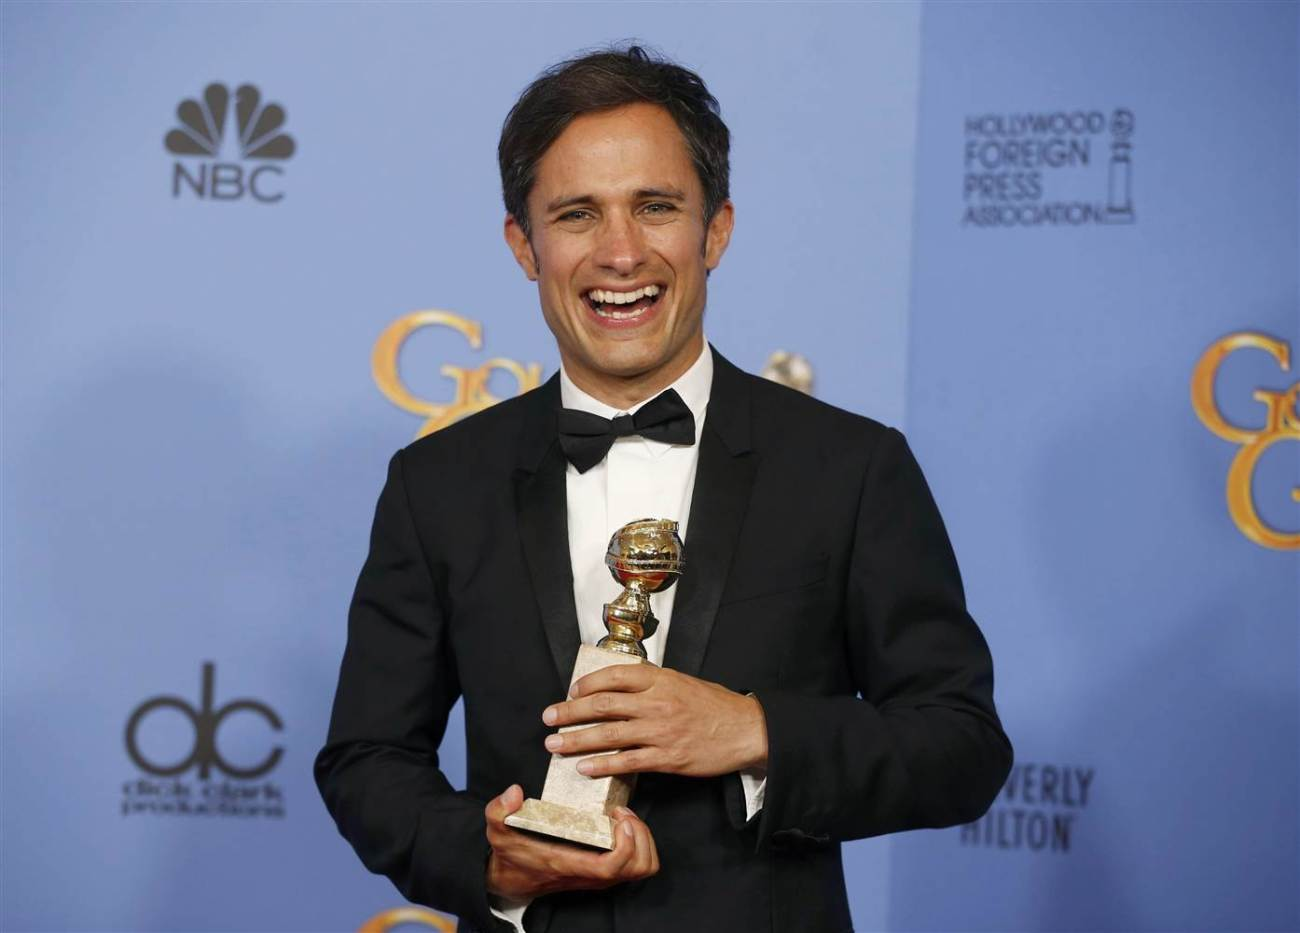 Mexican actor Gael Garcia Bernal wins a Golden Globe at the 2016 awards show.